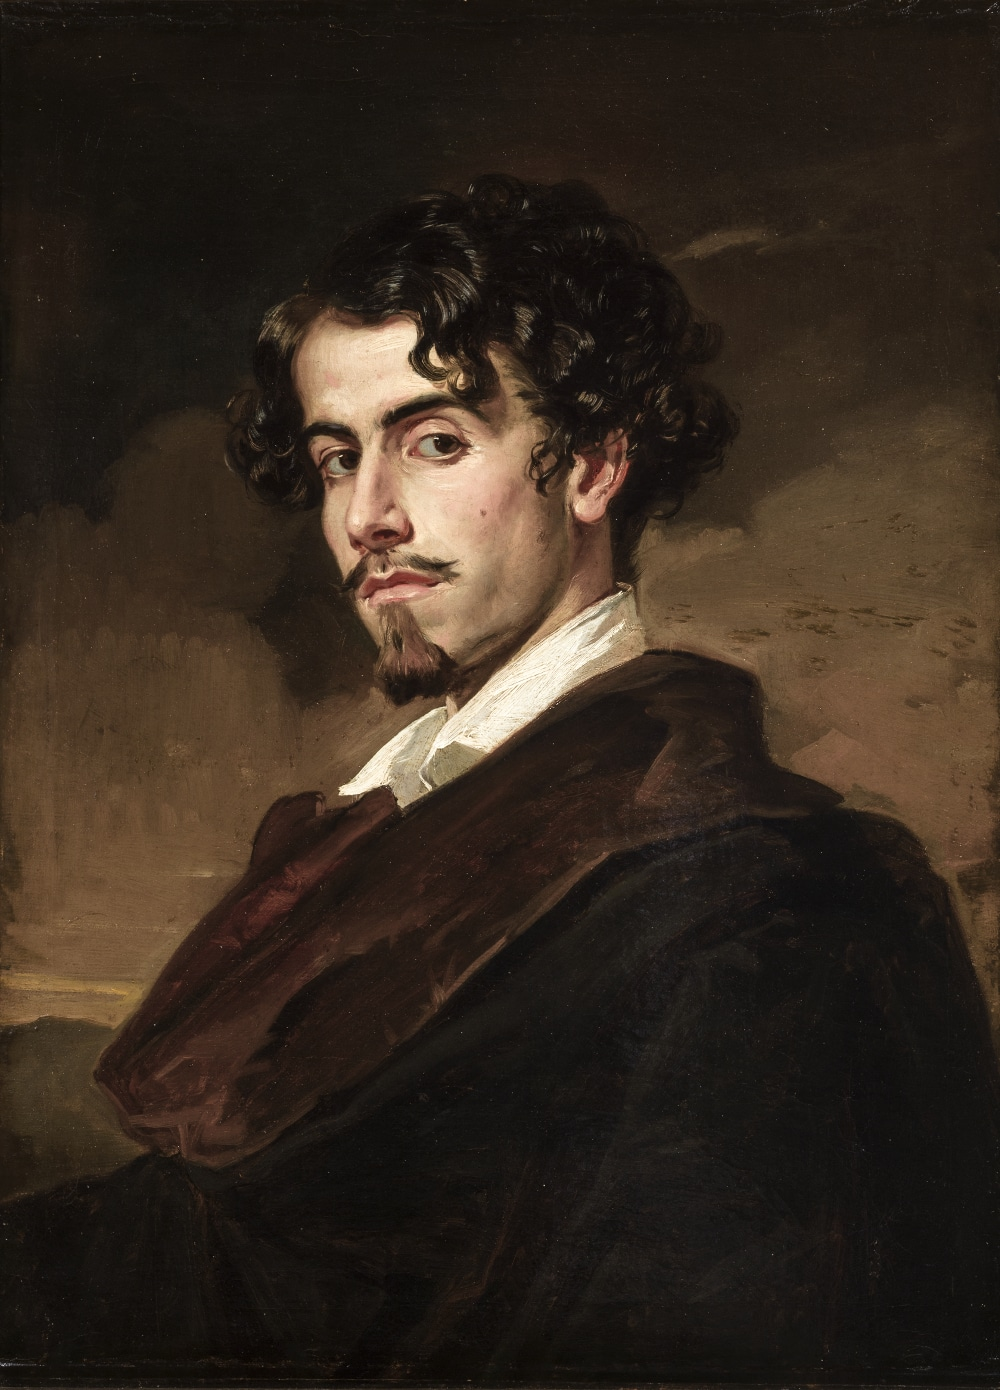 Portrait_of_Gustavo_Adolfo_Bécquer,_by_his_brother_Valeriano_(1862)